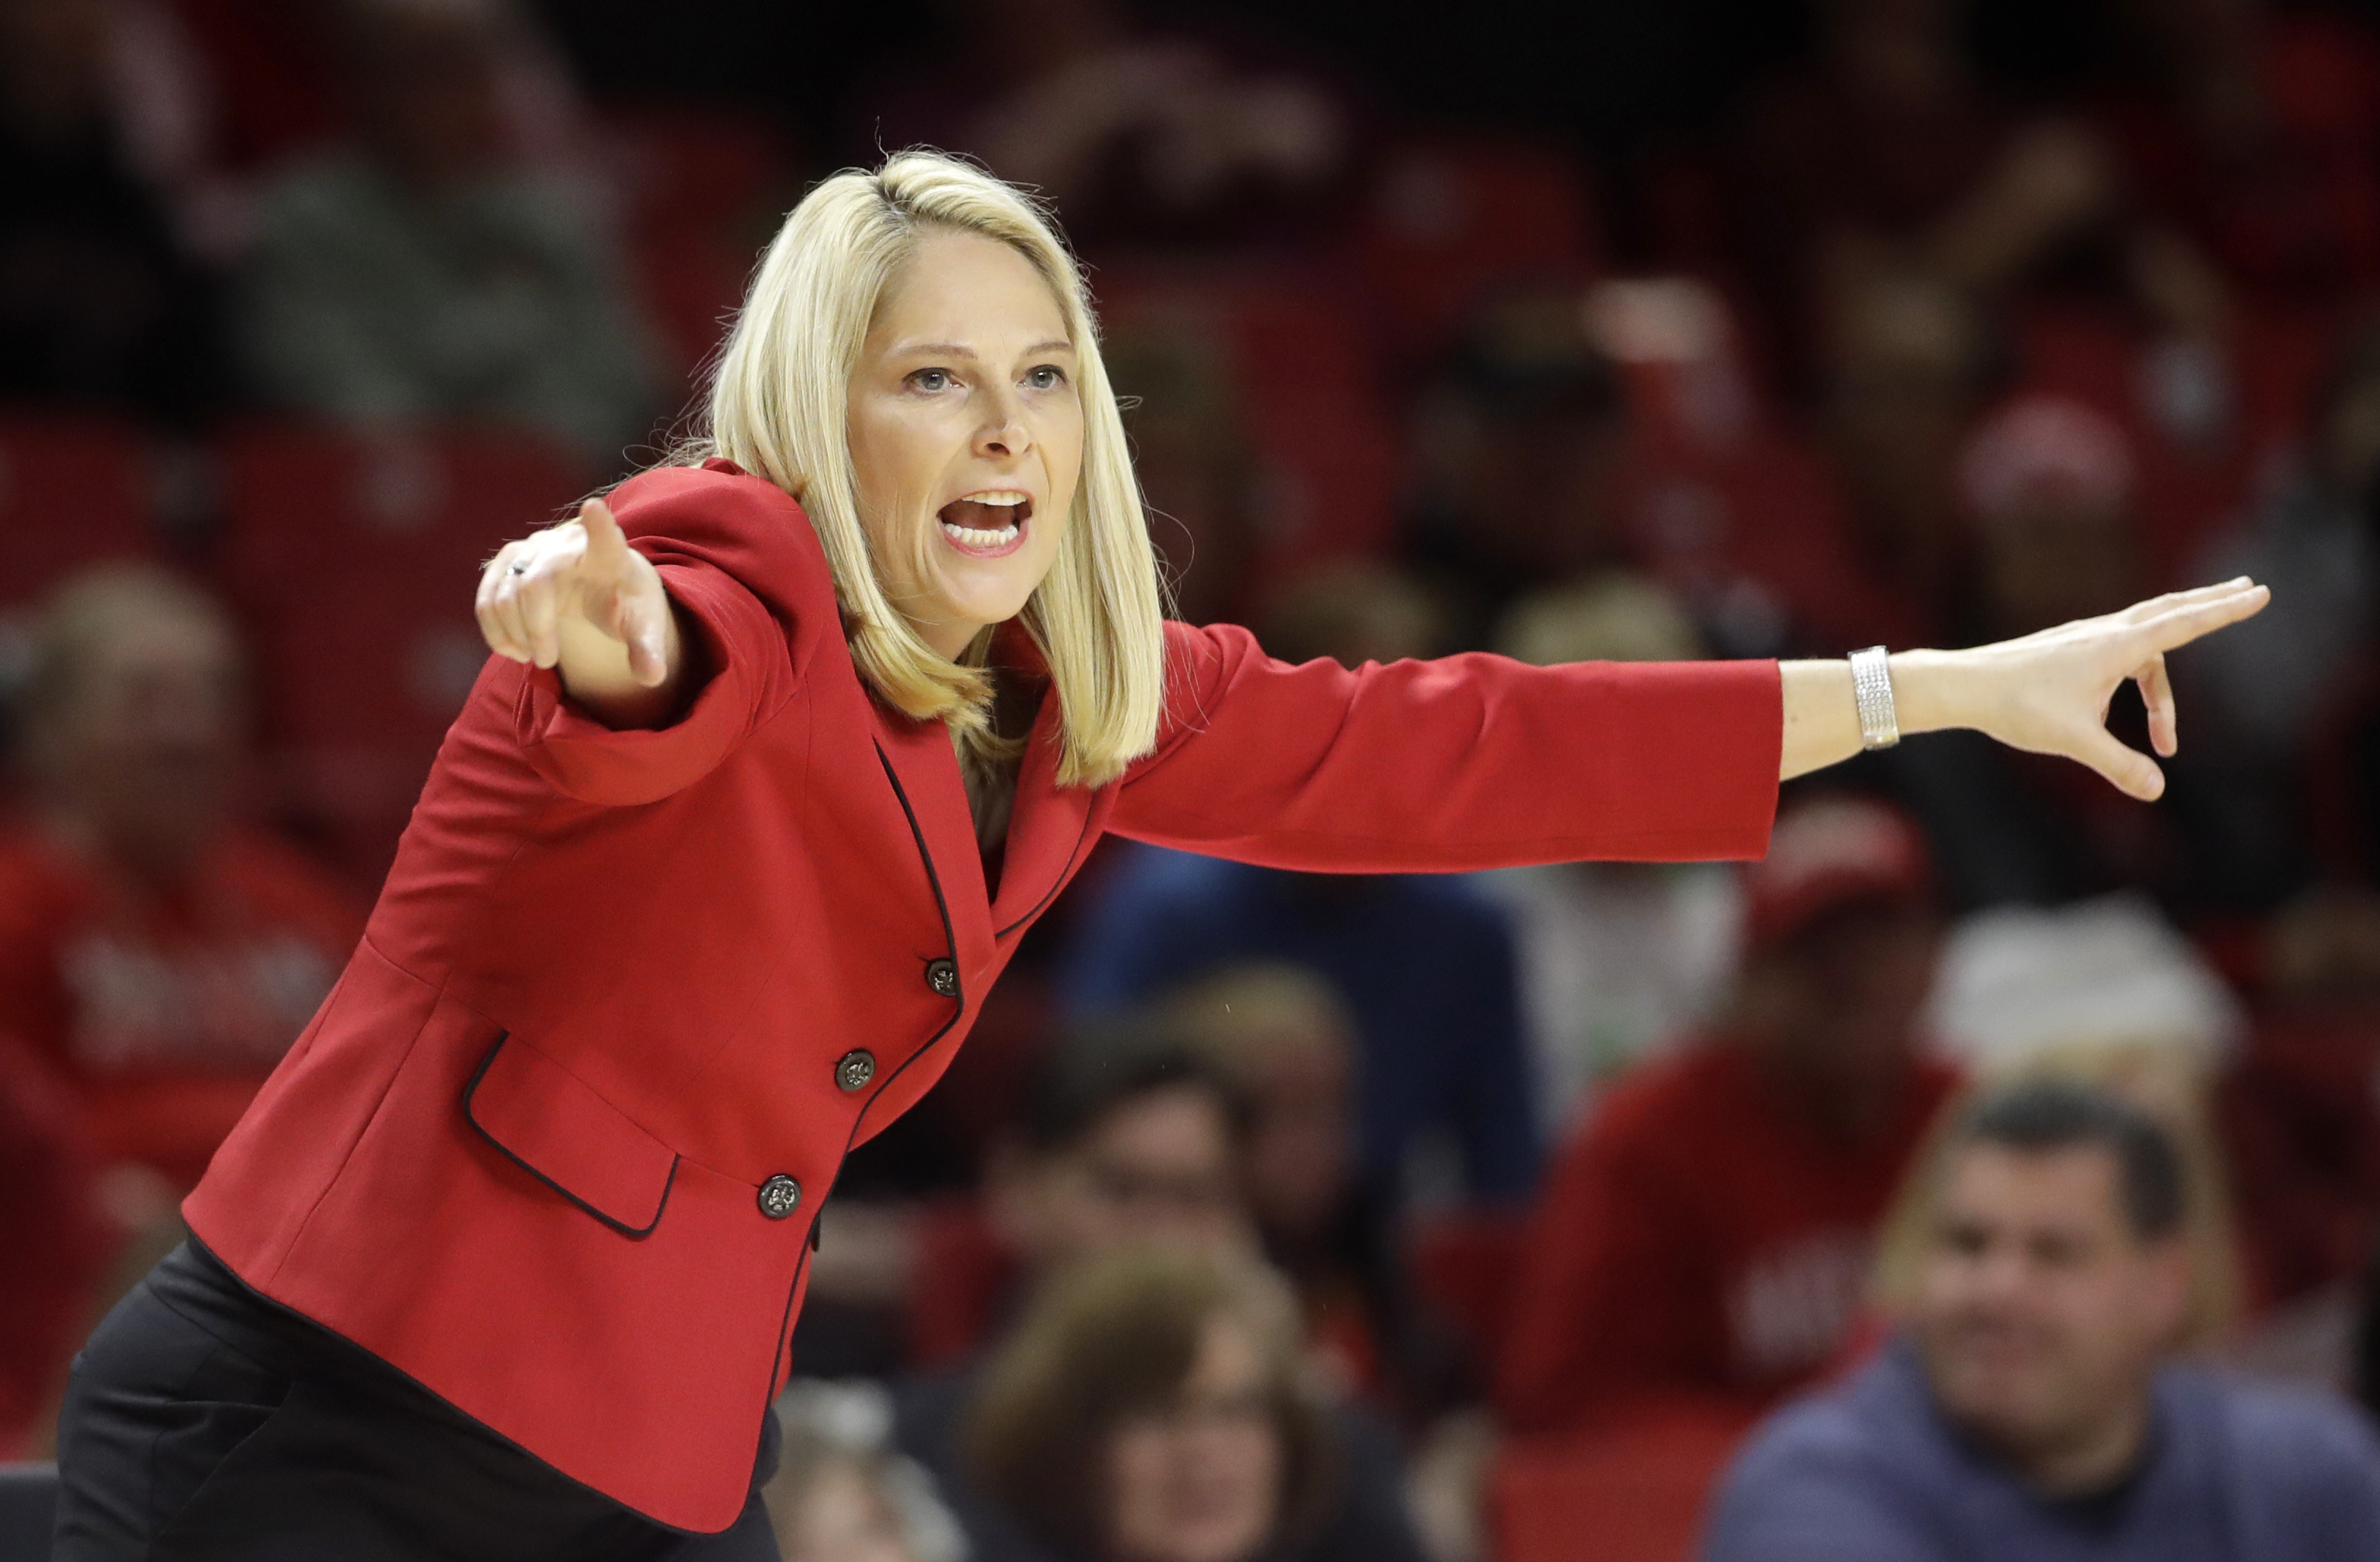 FILE - In this Jan. 7, 2017, file photo, Maryland head coach Brenda Frese directs her players in the first half of an NCAA college basketball game against Northwestern,  in College Park, Md. The journey for Maryland (30-2) begins Friday against Bucknell (